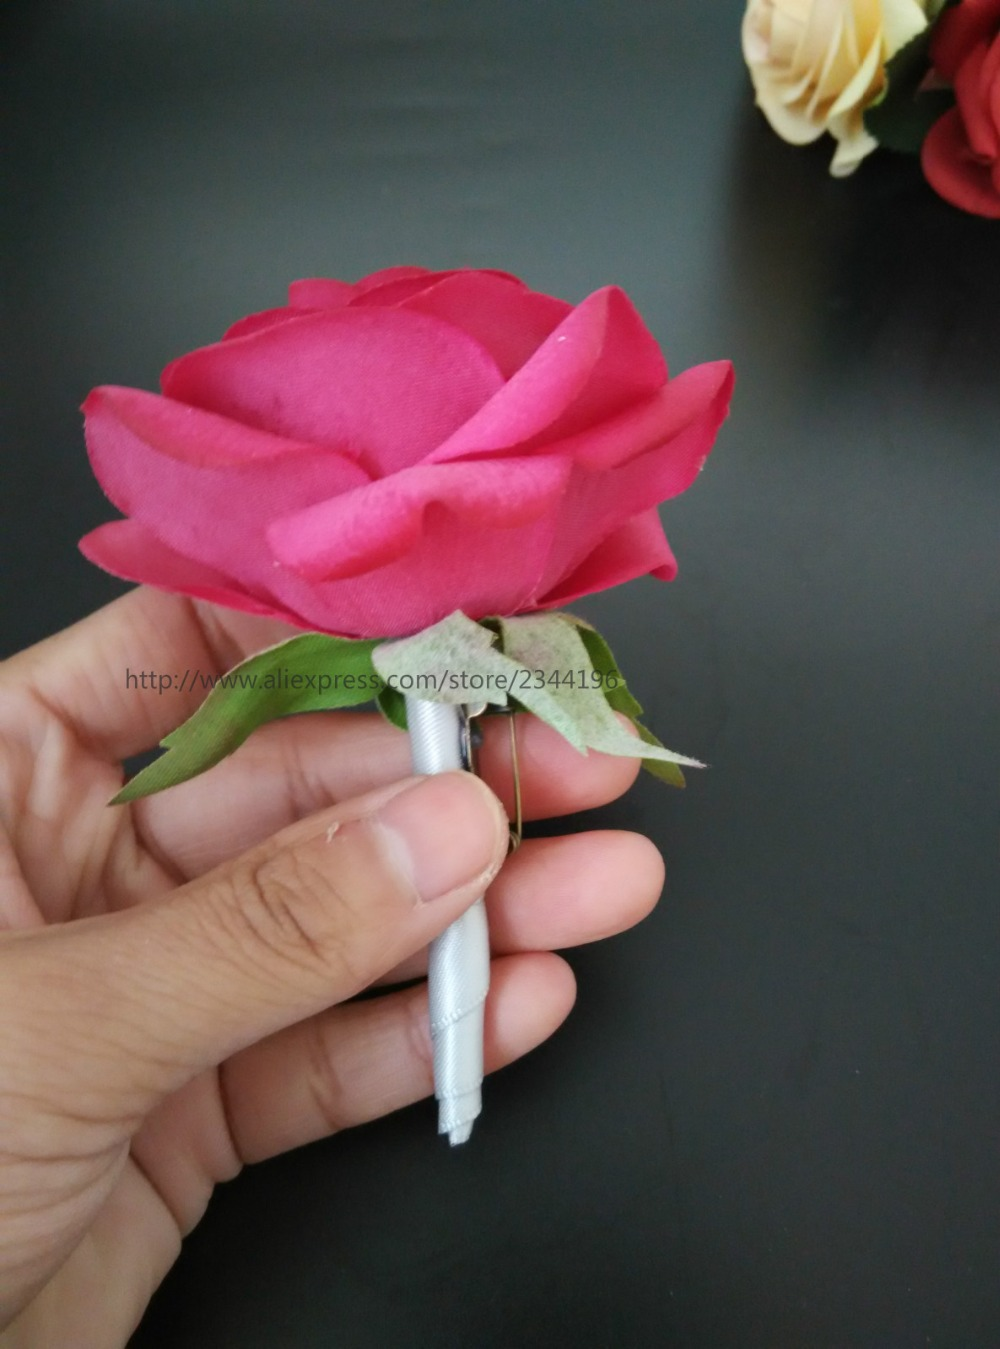 Artificial Shocking Pink Rose Boutonnieres Tied With Silver Ribbon